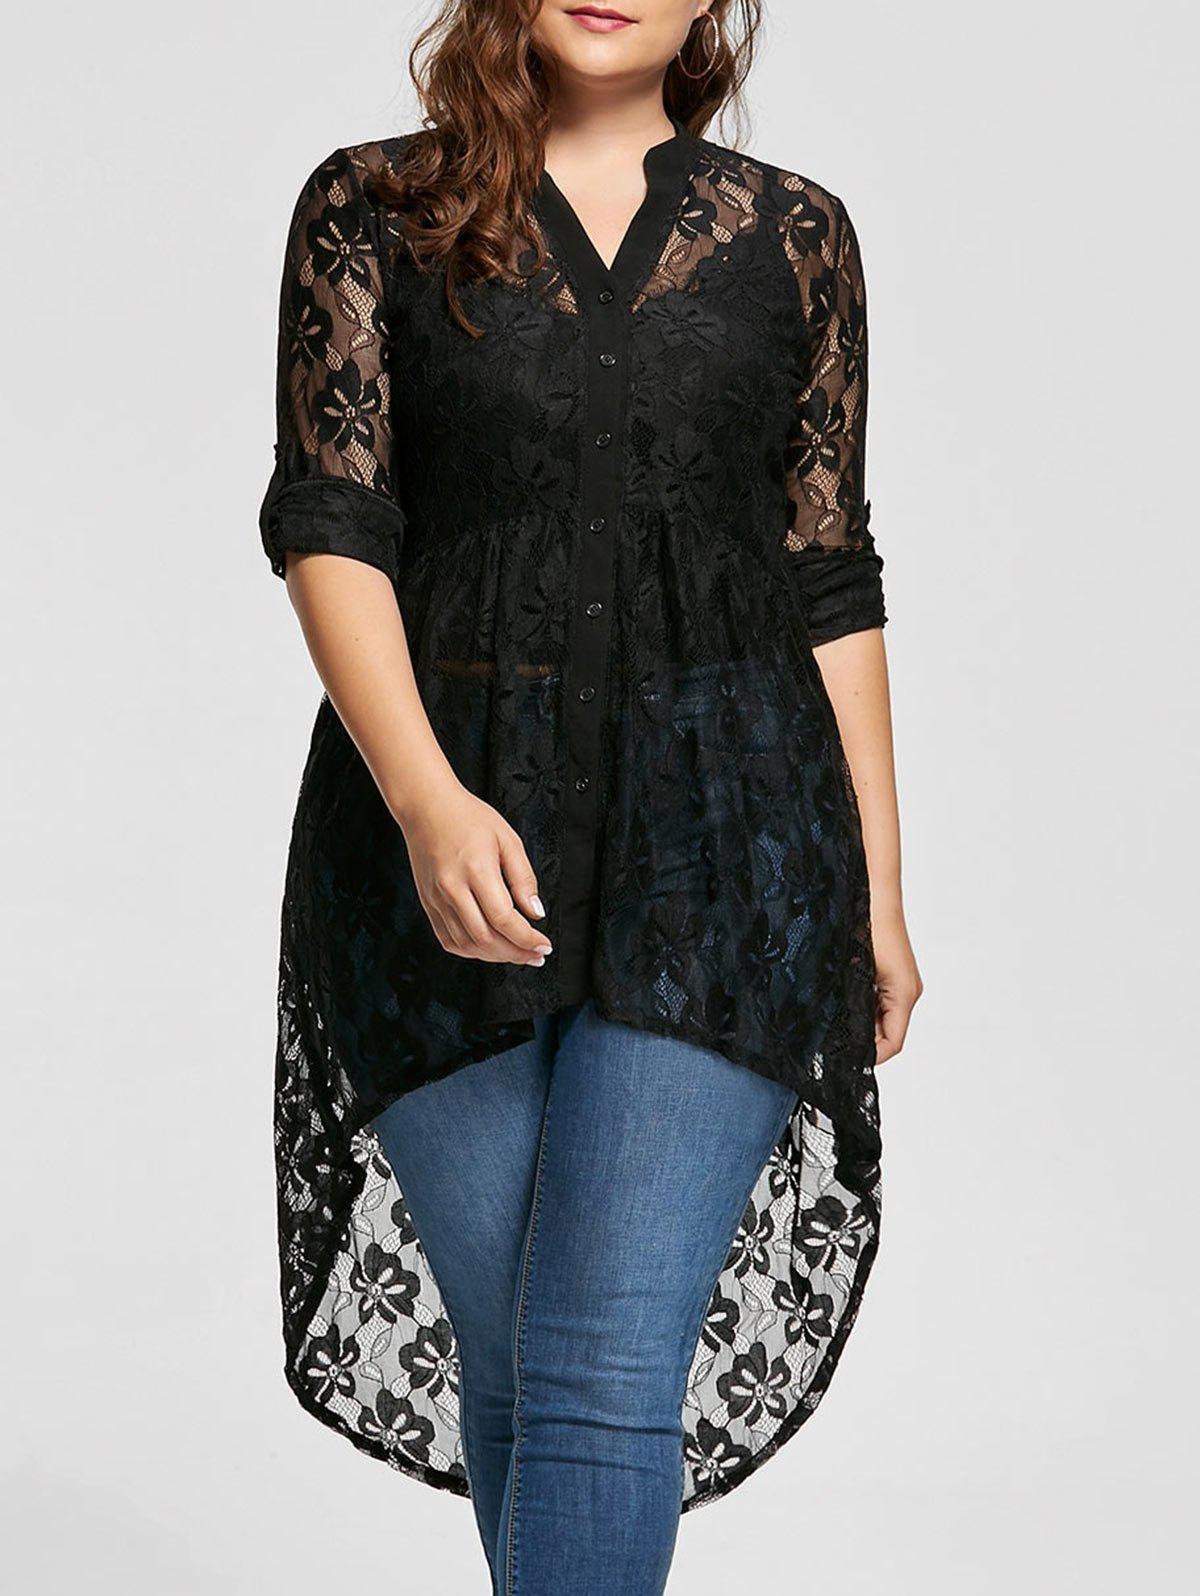 High Low Lace Long Sleeve Plus Size TopWOMEN<br><br>Size: 2XL; Color: BLACK; Material: Polyester; Shirt Length: Long; Sleeve Length: Full; Collar: V-Neck; Style: Fashion; Season: Fall,Spring; Pattern Type: Solid; Weight: 0.2600kg; Package Contents: 1 x Top;